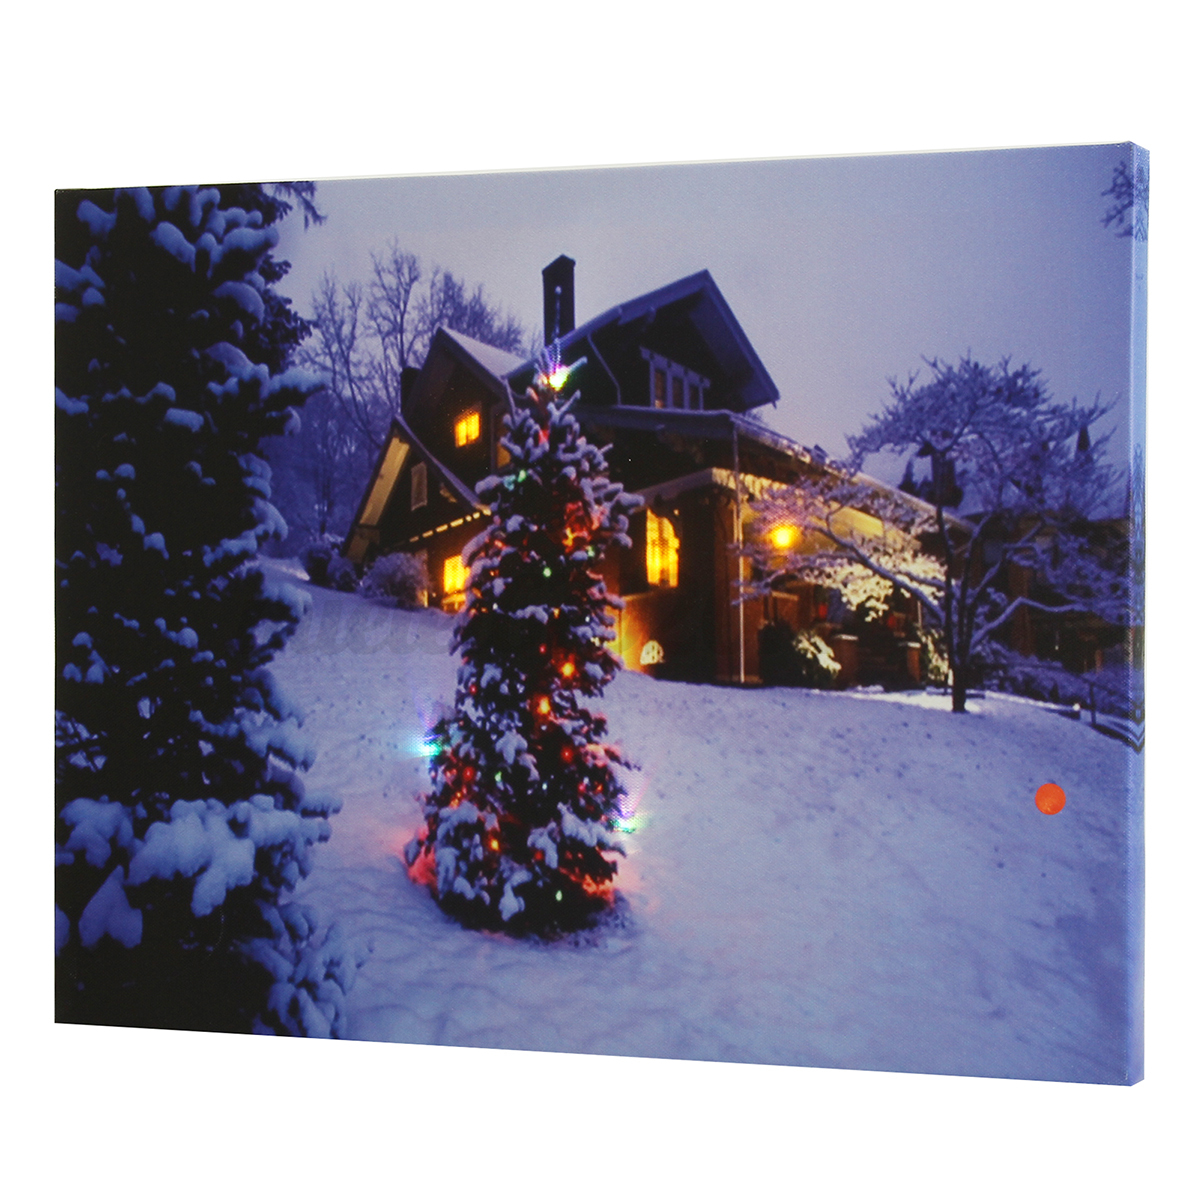 LED Light Up Christmas Canvas Pictures 30x40cm Xmas Picture Decor Wall Hanging eBay